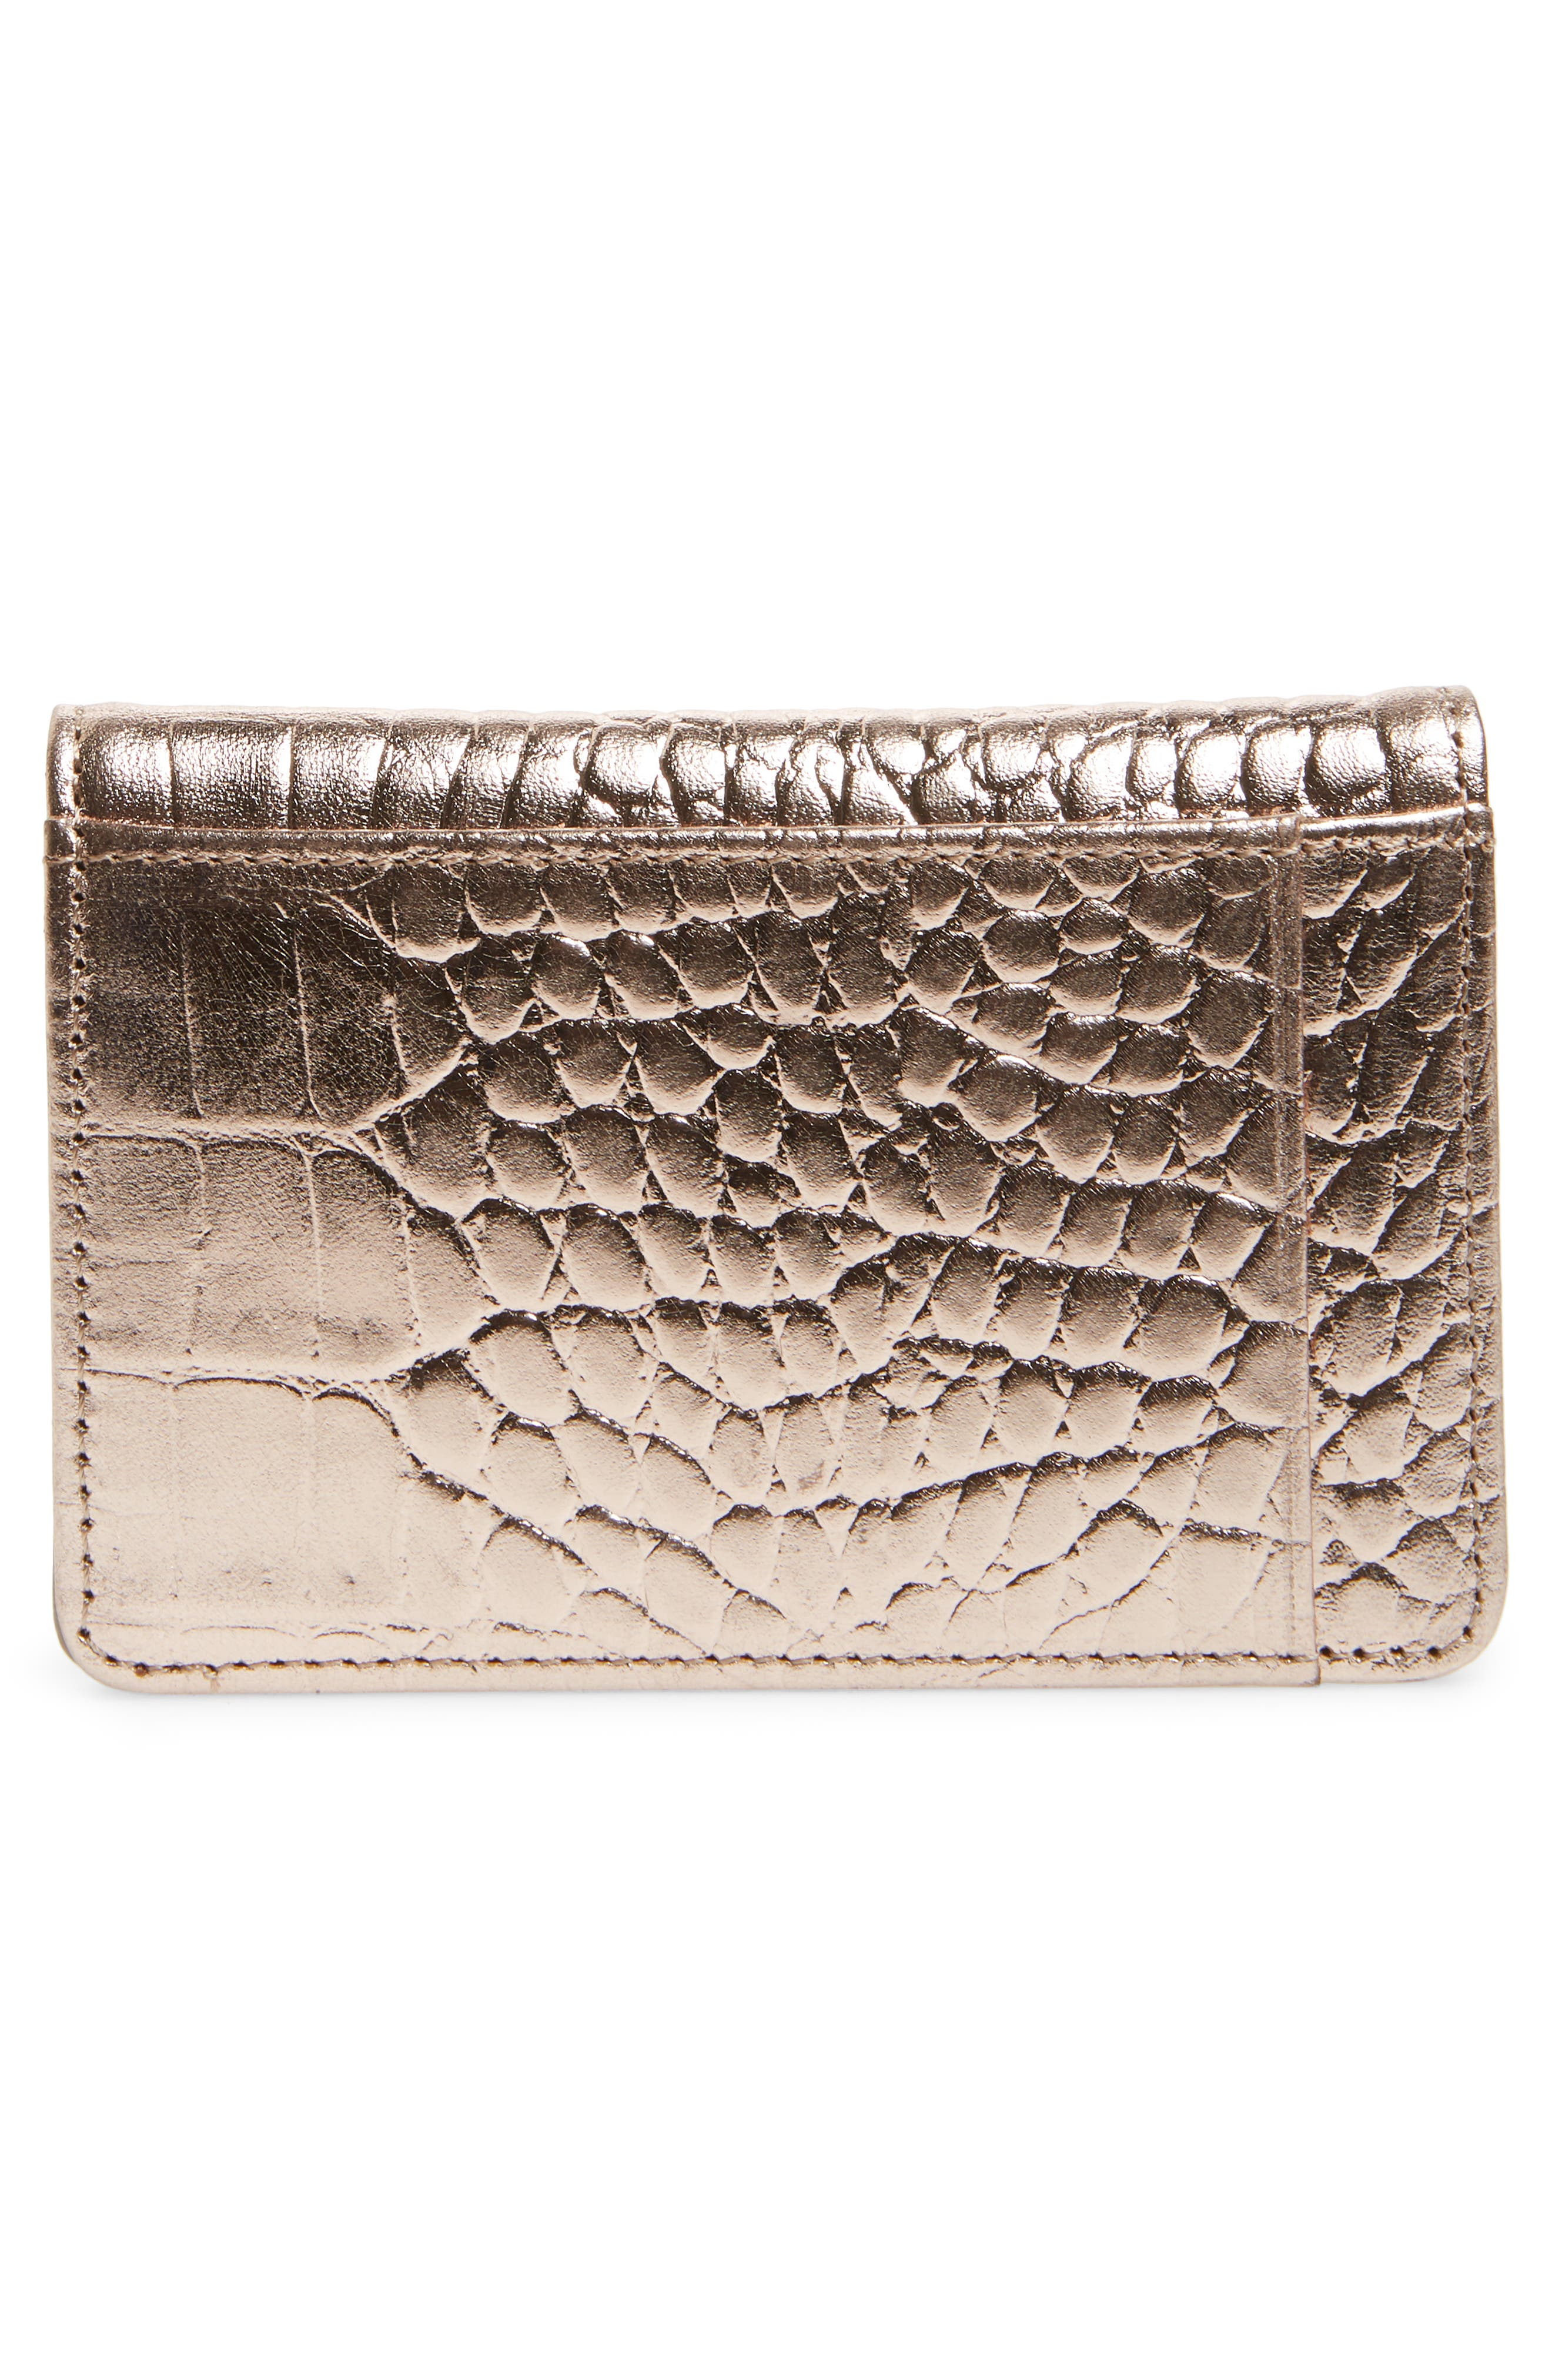 Ruby Croc Embossed Leather Cardholder,                             Alternate thumbnail 3, color,                             PINK DUST